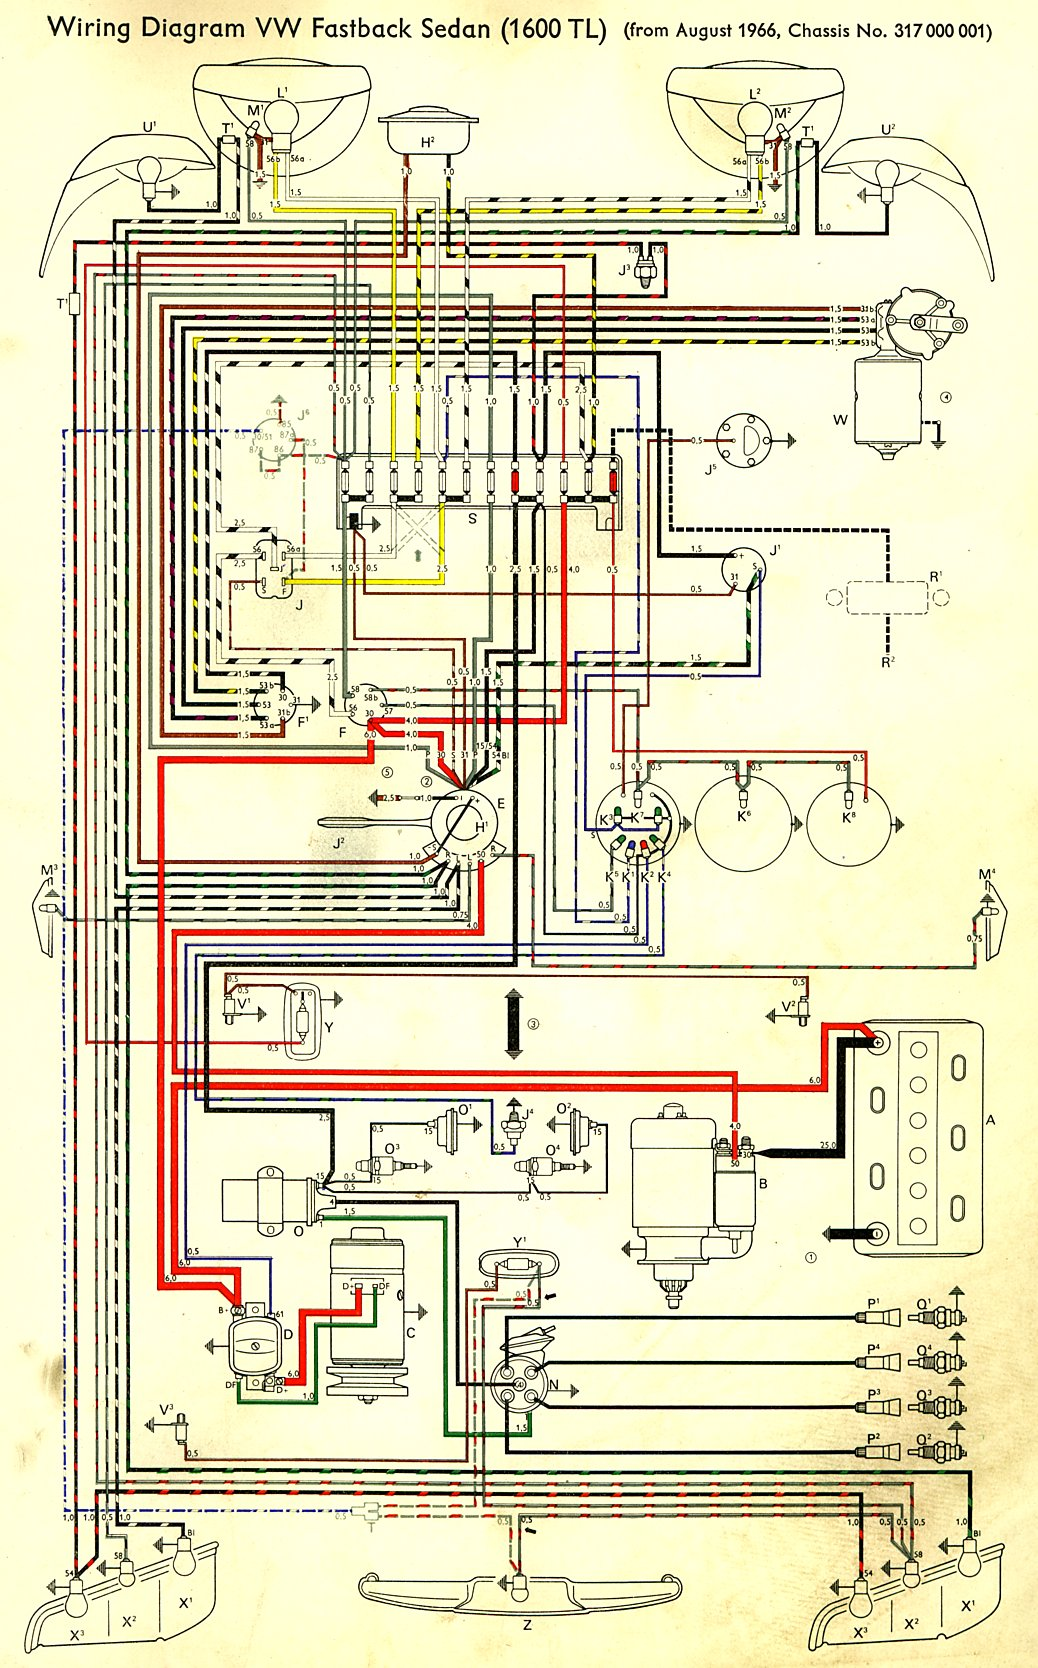 thesamba com type 3 wiring diagrams rh thesamba com VW Voltage Regulator  Wiring VW Voltage Regulator